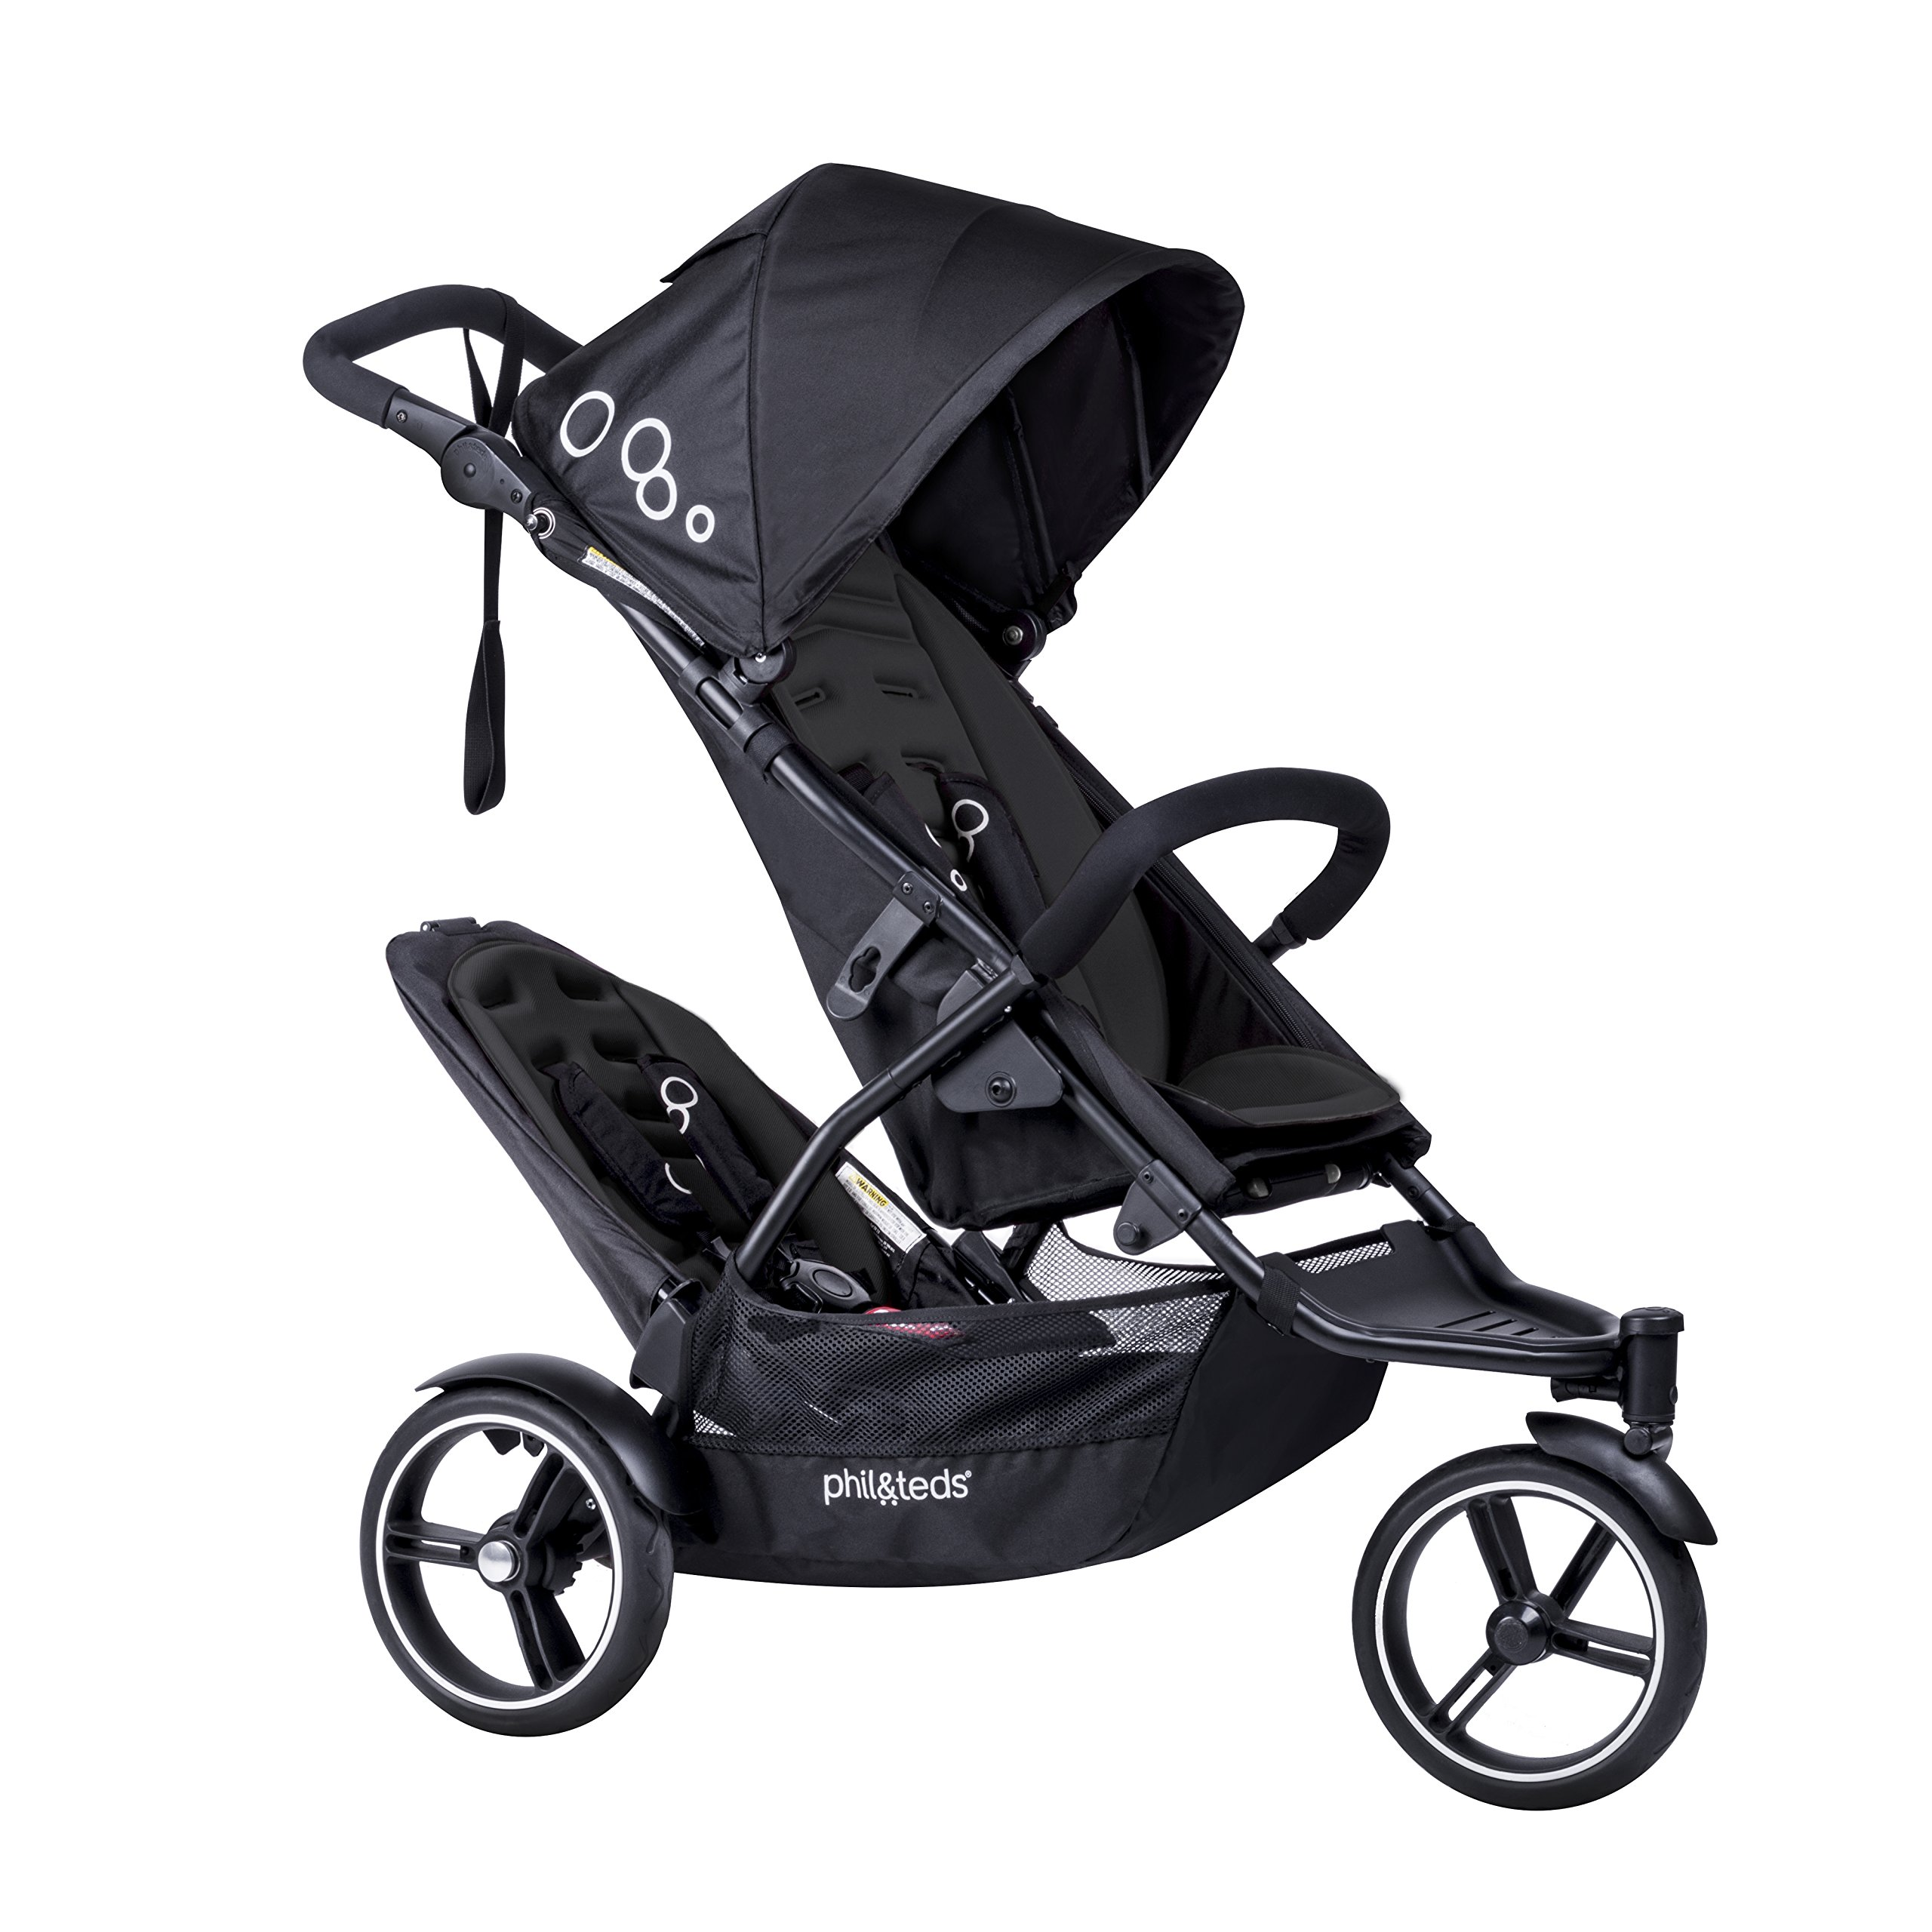 phil&teds Dot Compact Inline City Stroller with Double Kit, Black - Compact Frame with Full Size Seat - Newborn Ready - Parent Facing Seat Included - Compact, One Hand Fold - Puncture Proof Tires by phil&teds